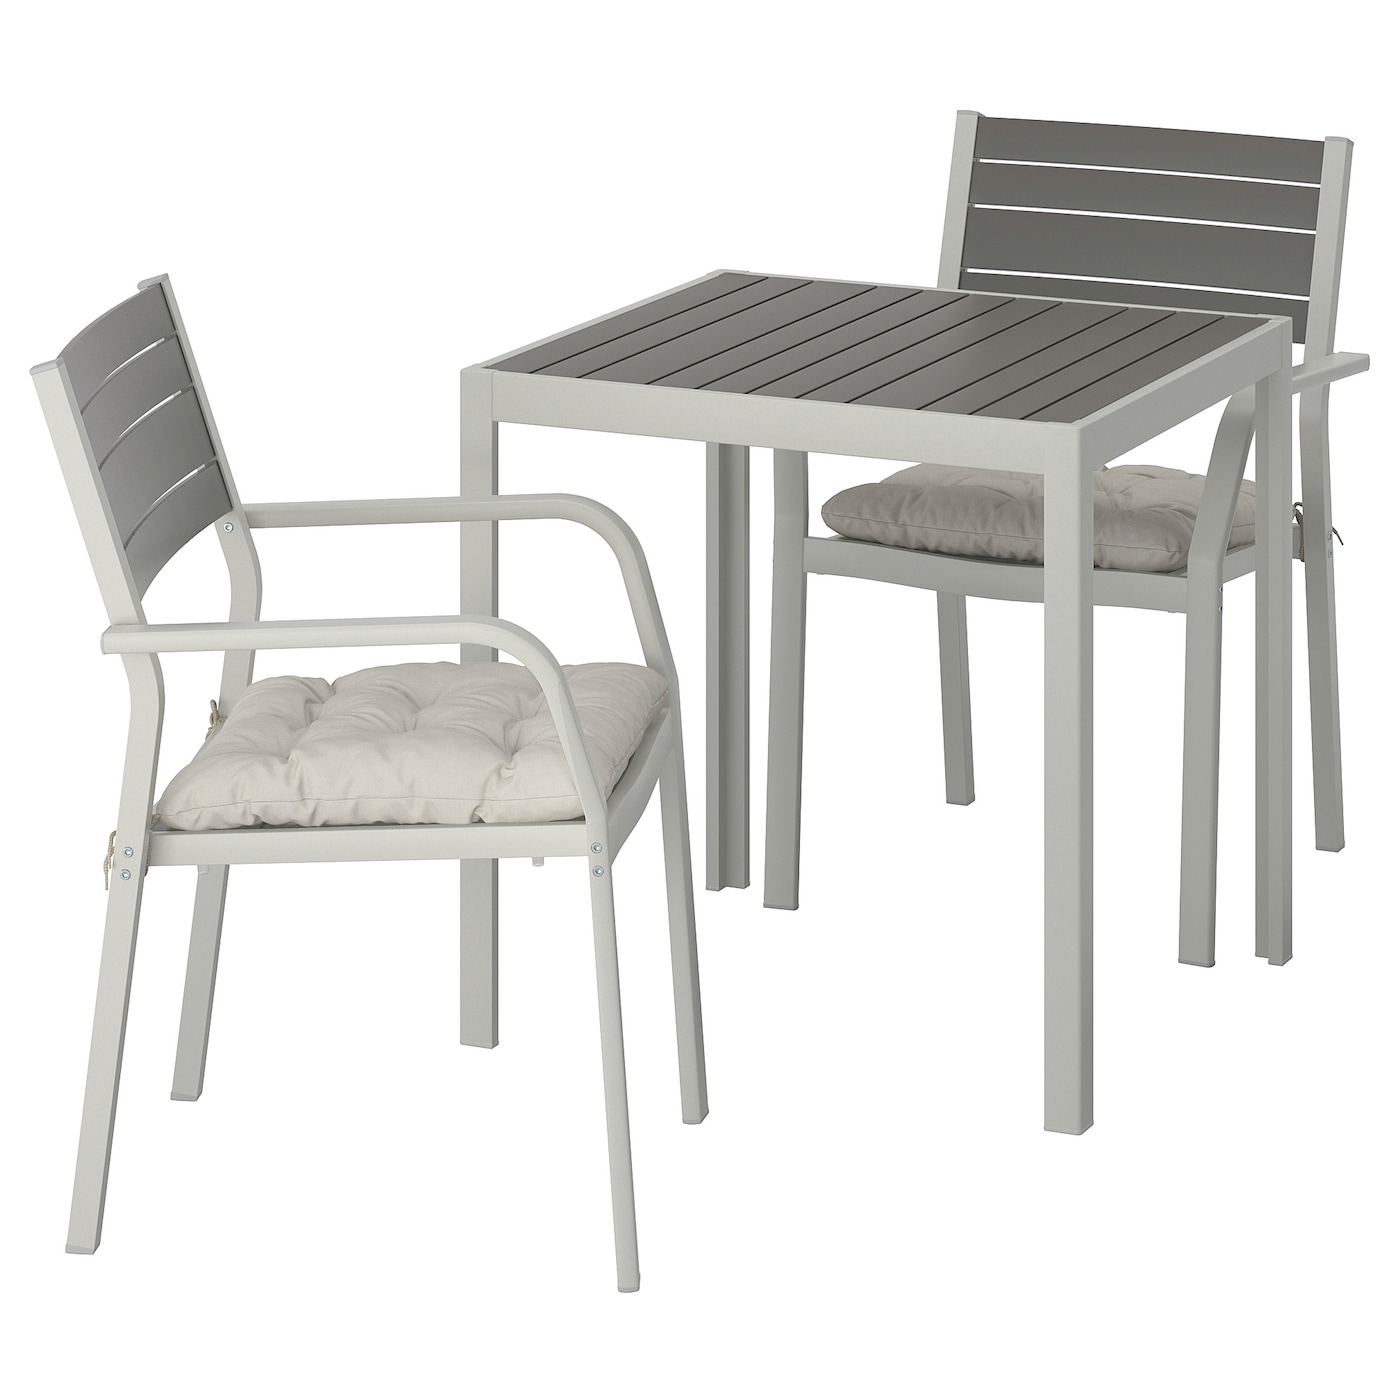 IKEA SJÄLLAND table + 2 chaises accoudoir, ext Chaise empilable permettant un gain de place.